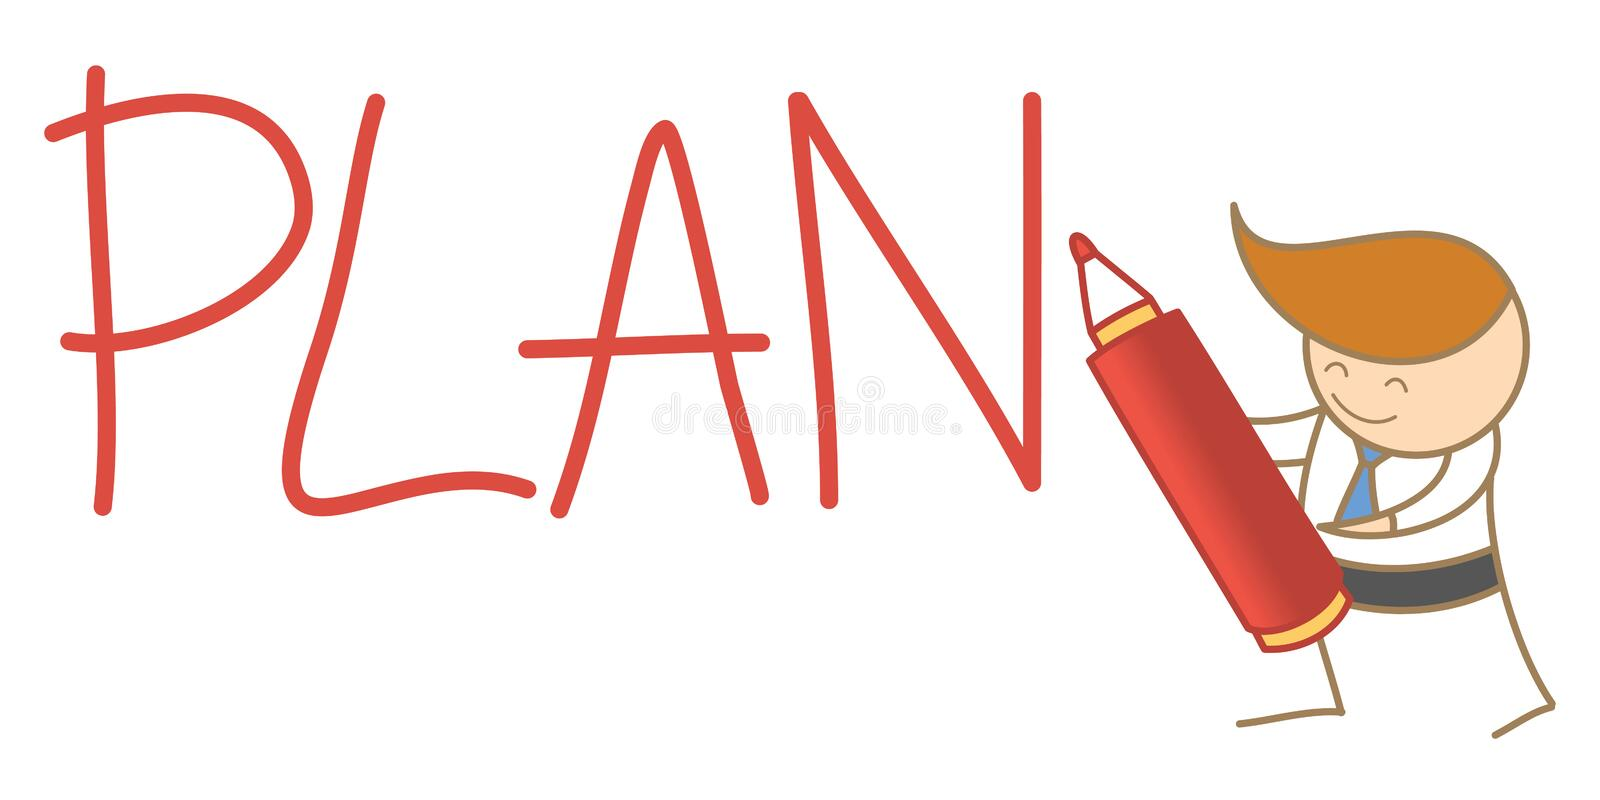 Man writing a plan word royalty free illustration